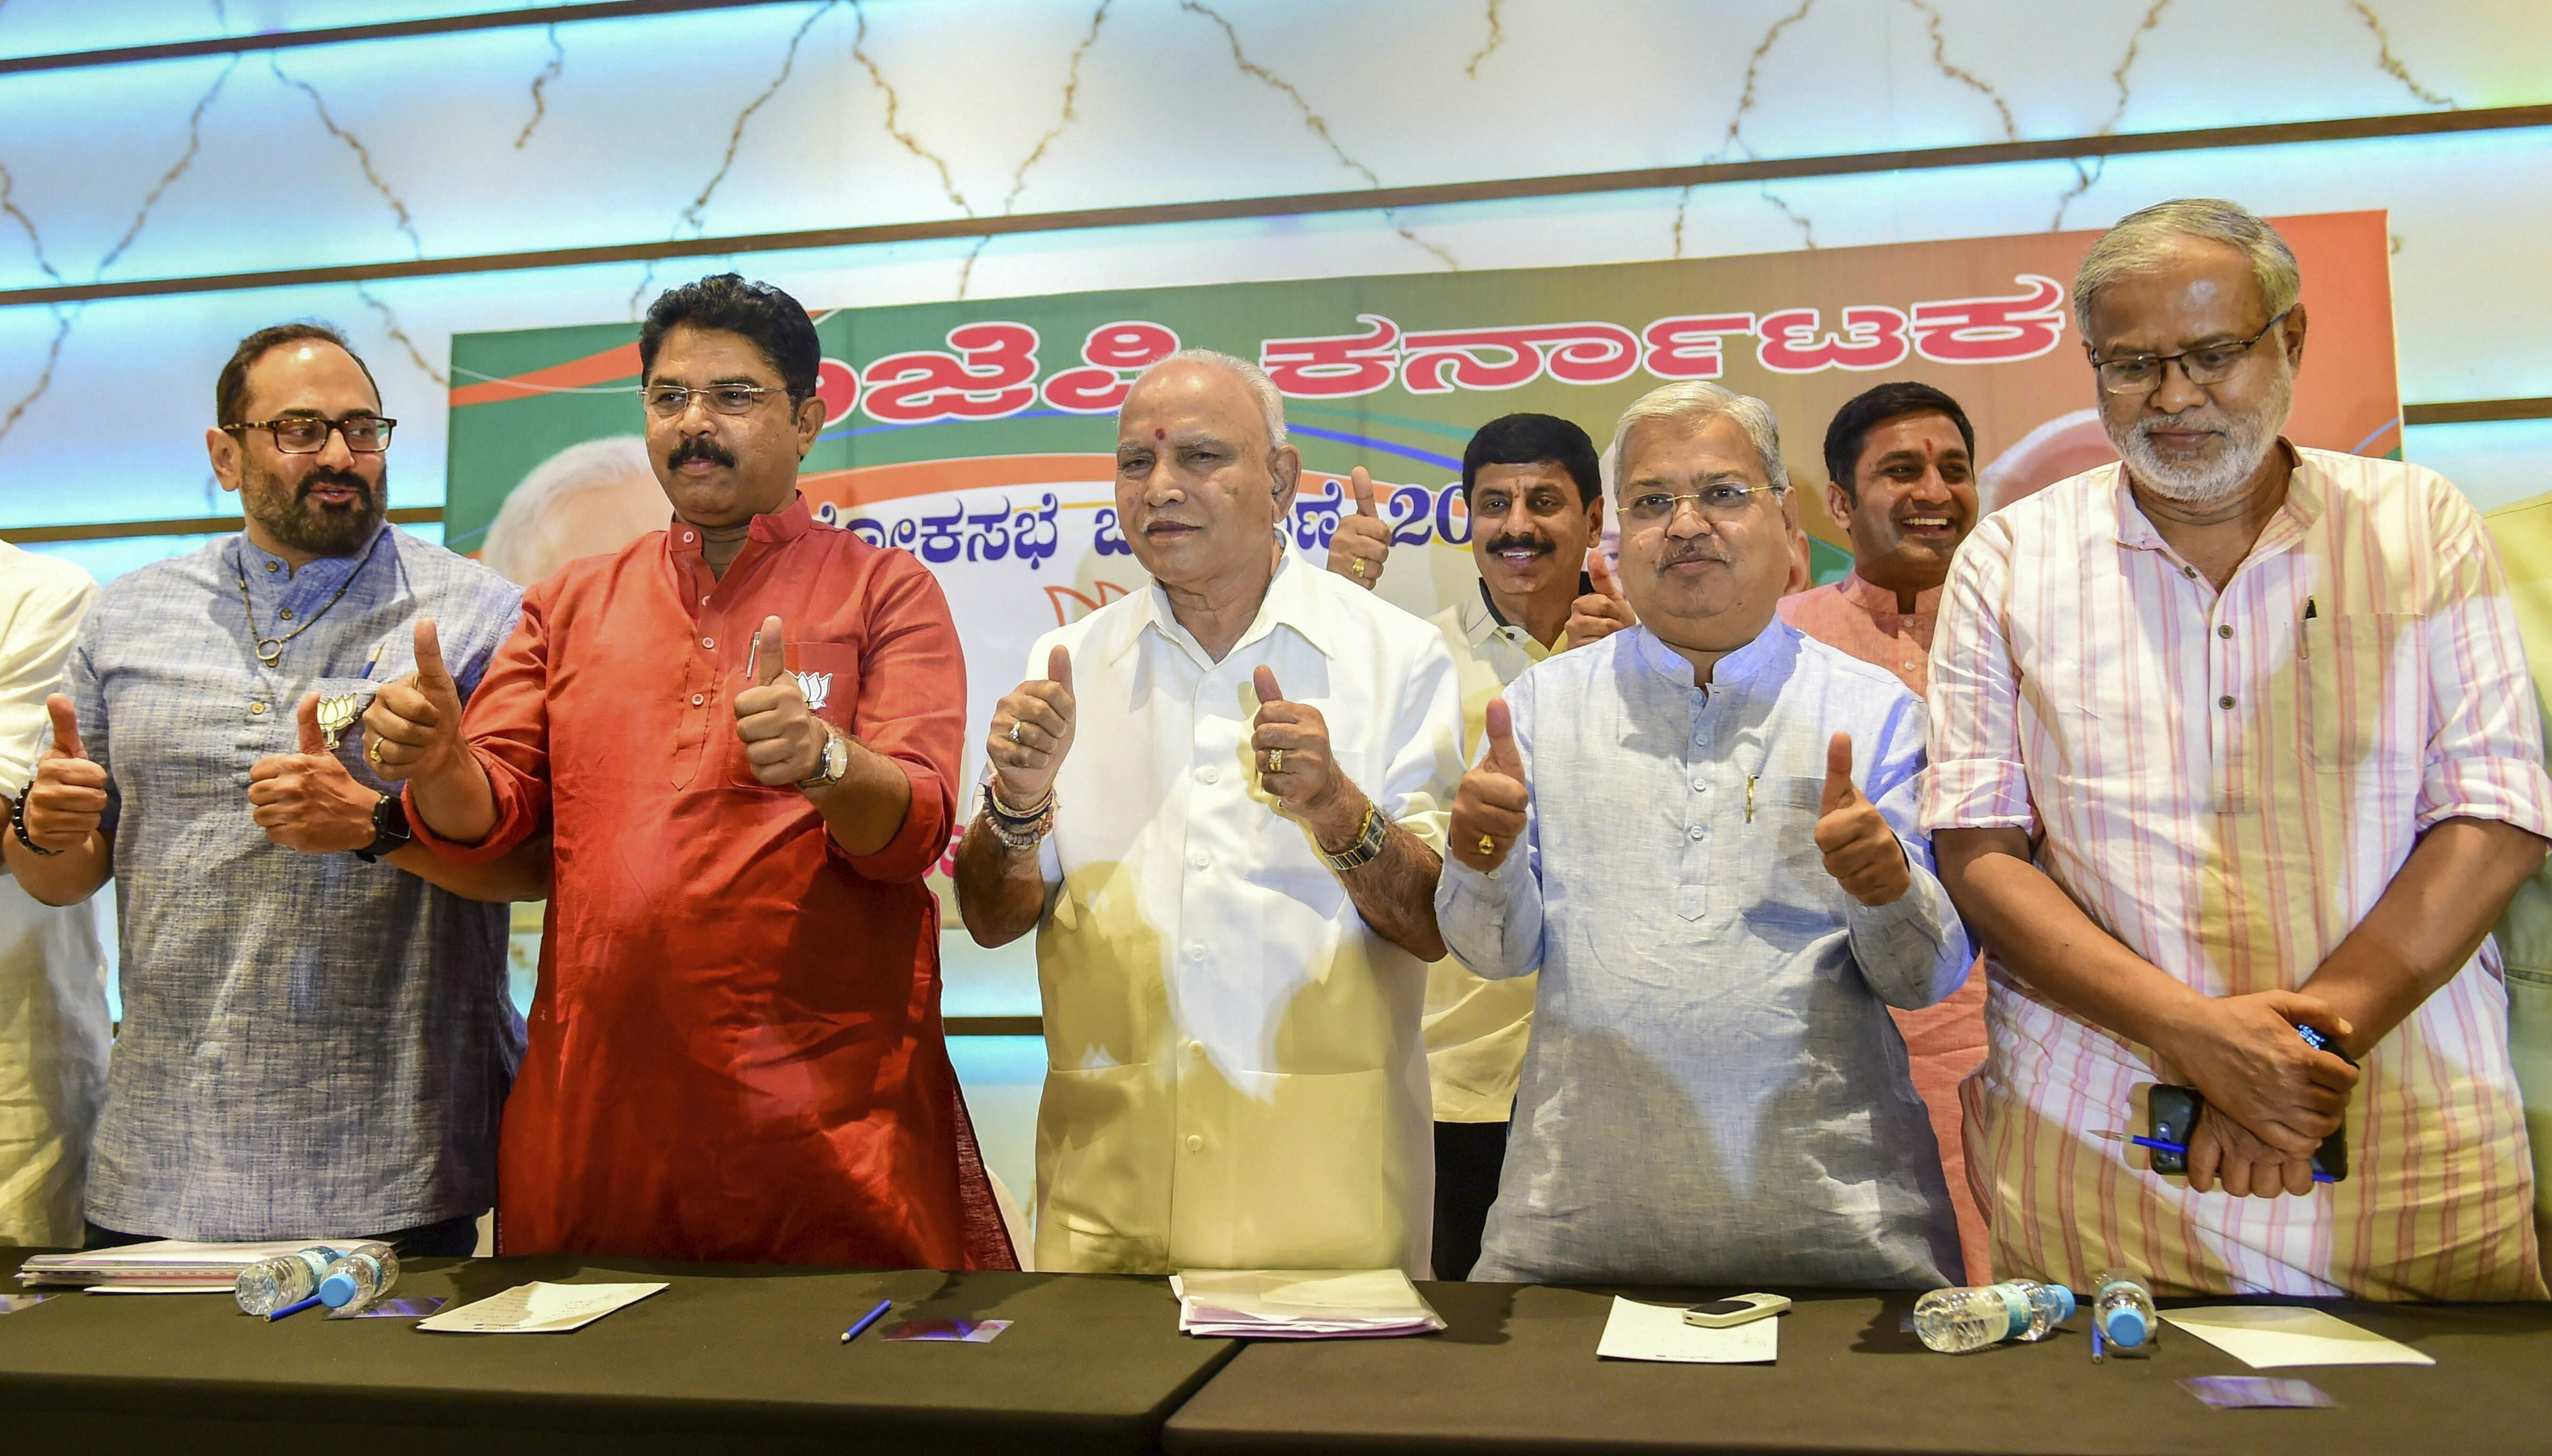 BJP Karnataka President BS Yediyurappa with state leaders pose for photos after addressing a press conference ahead of Lok Sabha elections 2019, in Bengaluru - AP